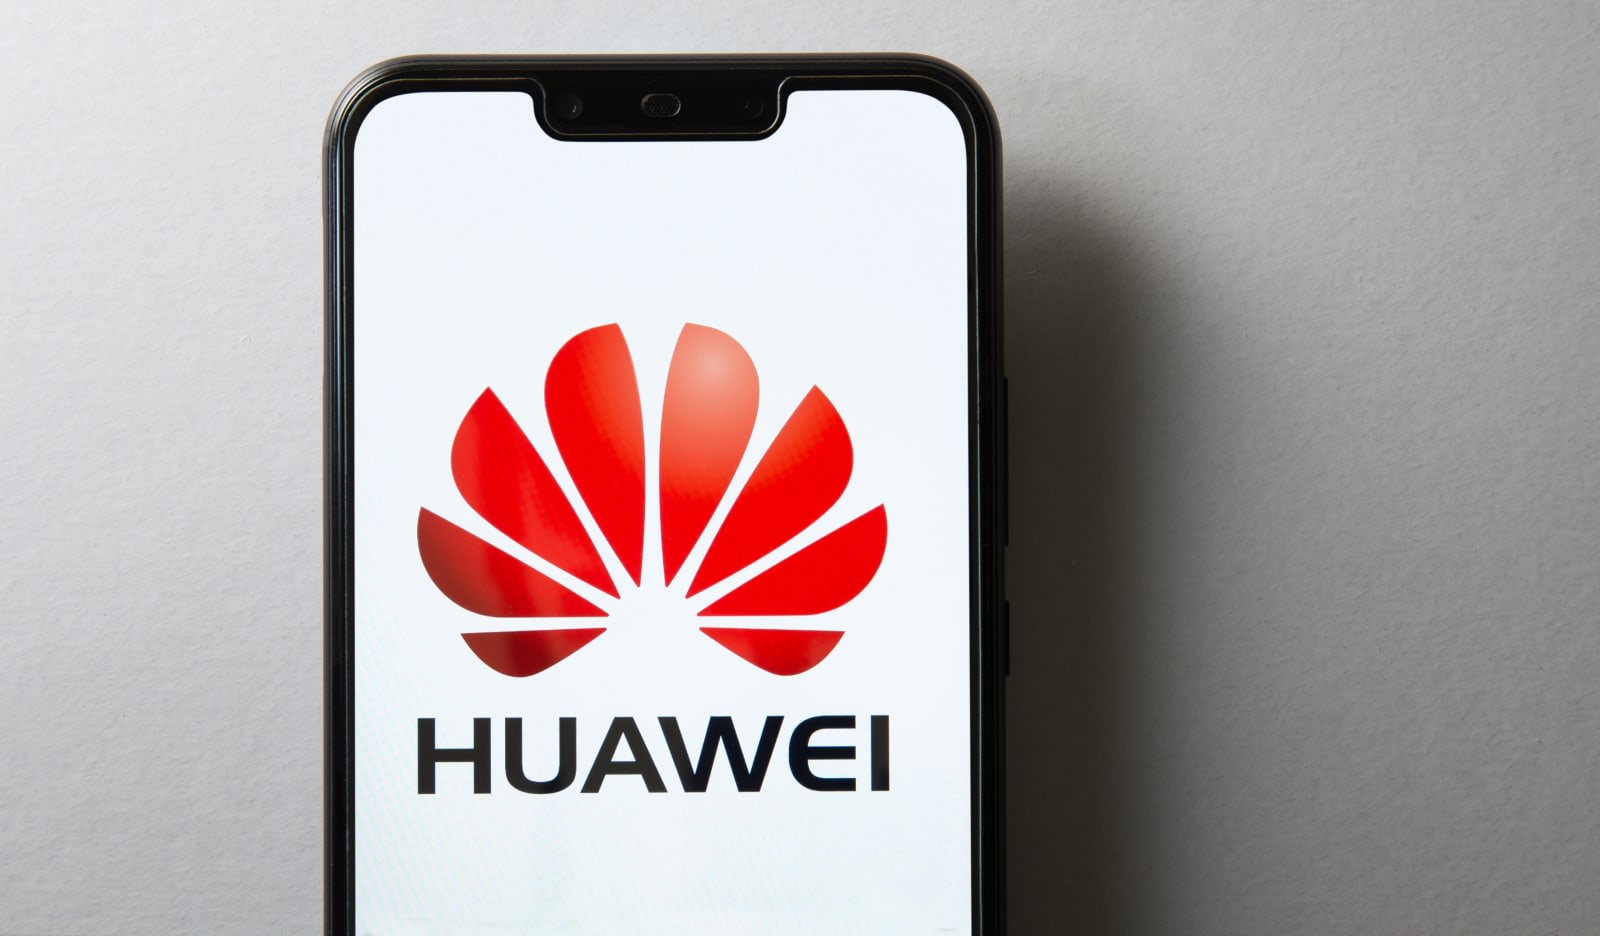 Huawei reports increased sales despite US sanctions